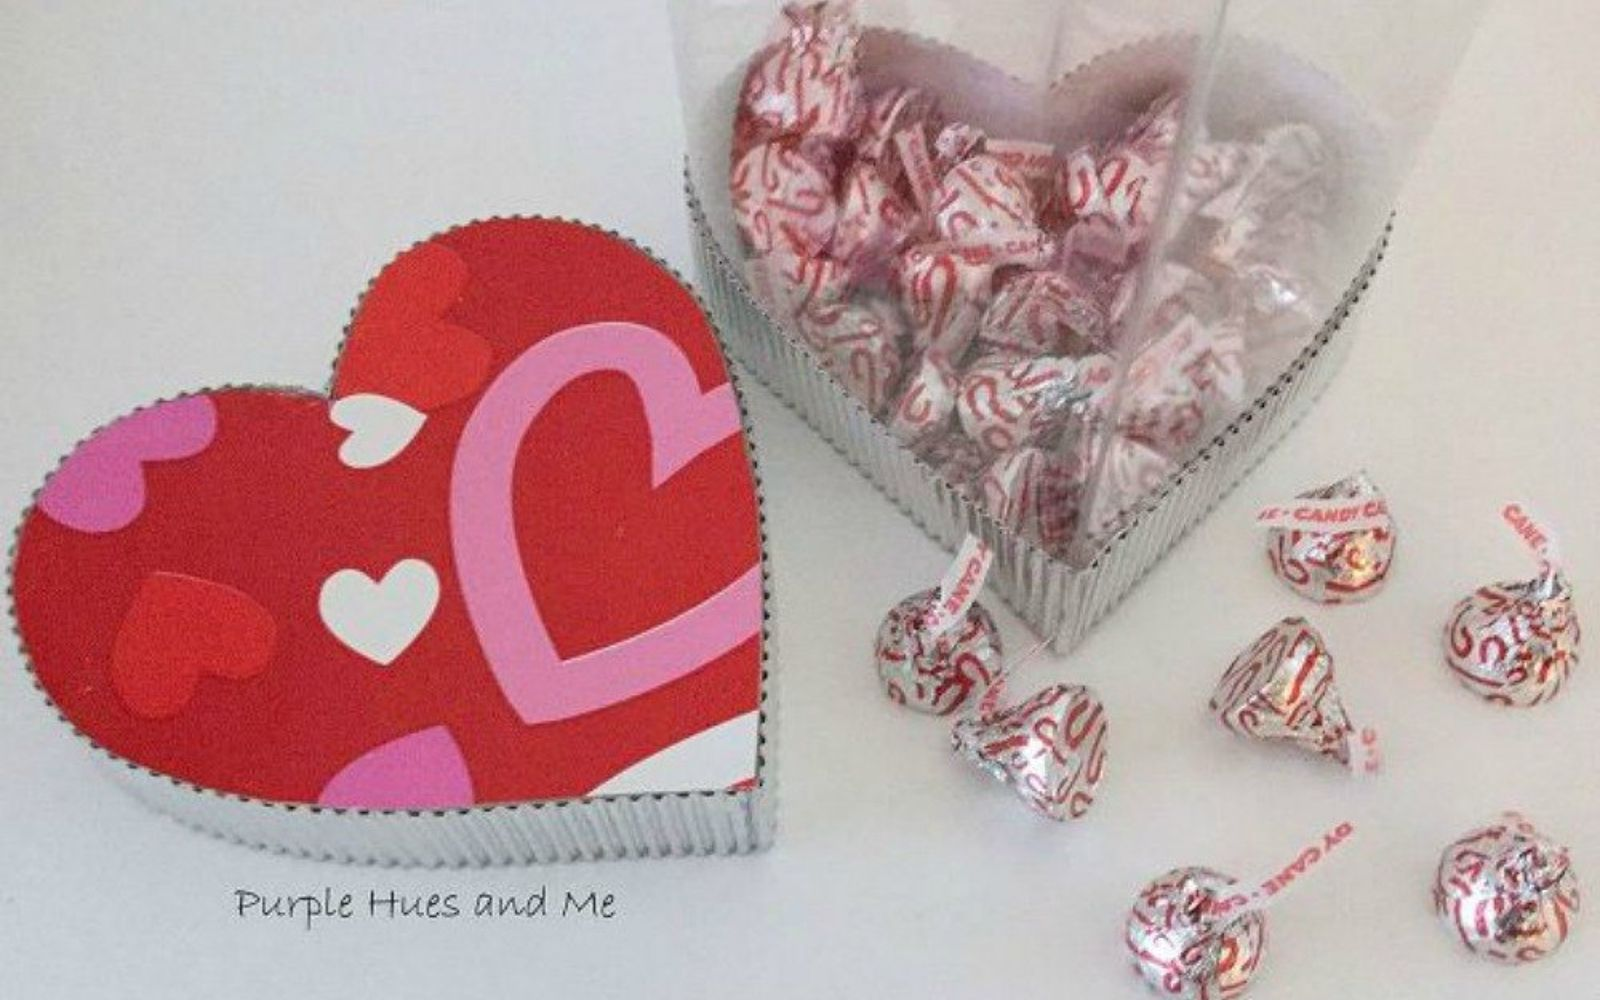 s 20 heartfelt valentine s day gifts for under 20, seasonal holiday decor, valentines day ideas, Turn a soda bottle into a heart gift box